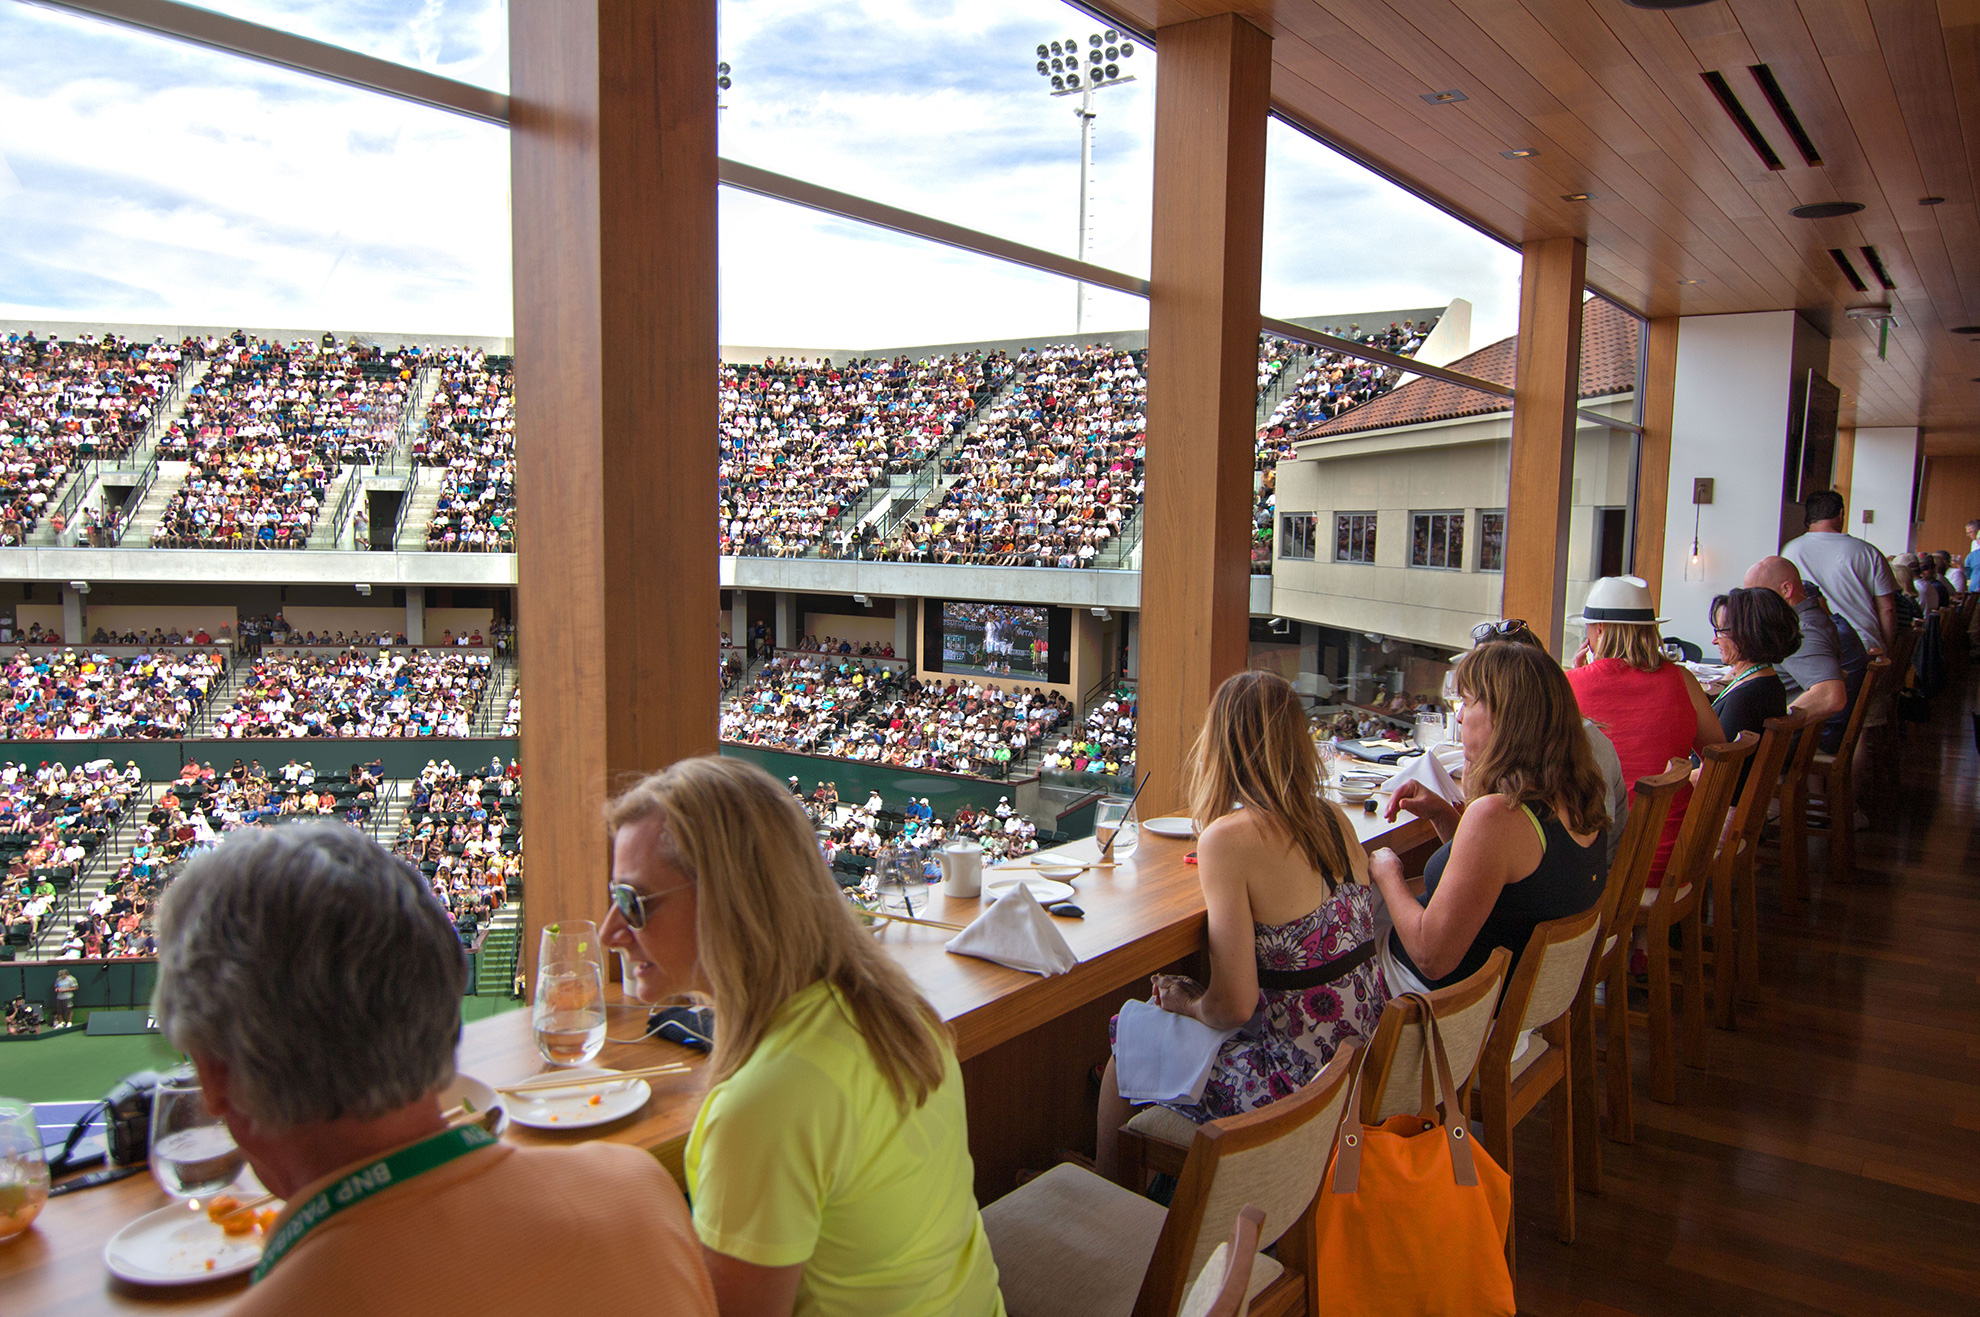 indian wells hindu personals Top-ranked american singles players jack sock and john isner won the doubles at indian wells, upending multiple grand slam champions bob and mike bryan both sock and isner said it is one of.